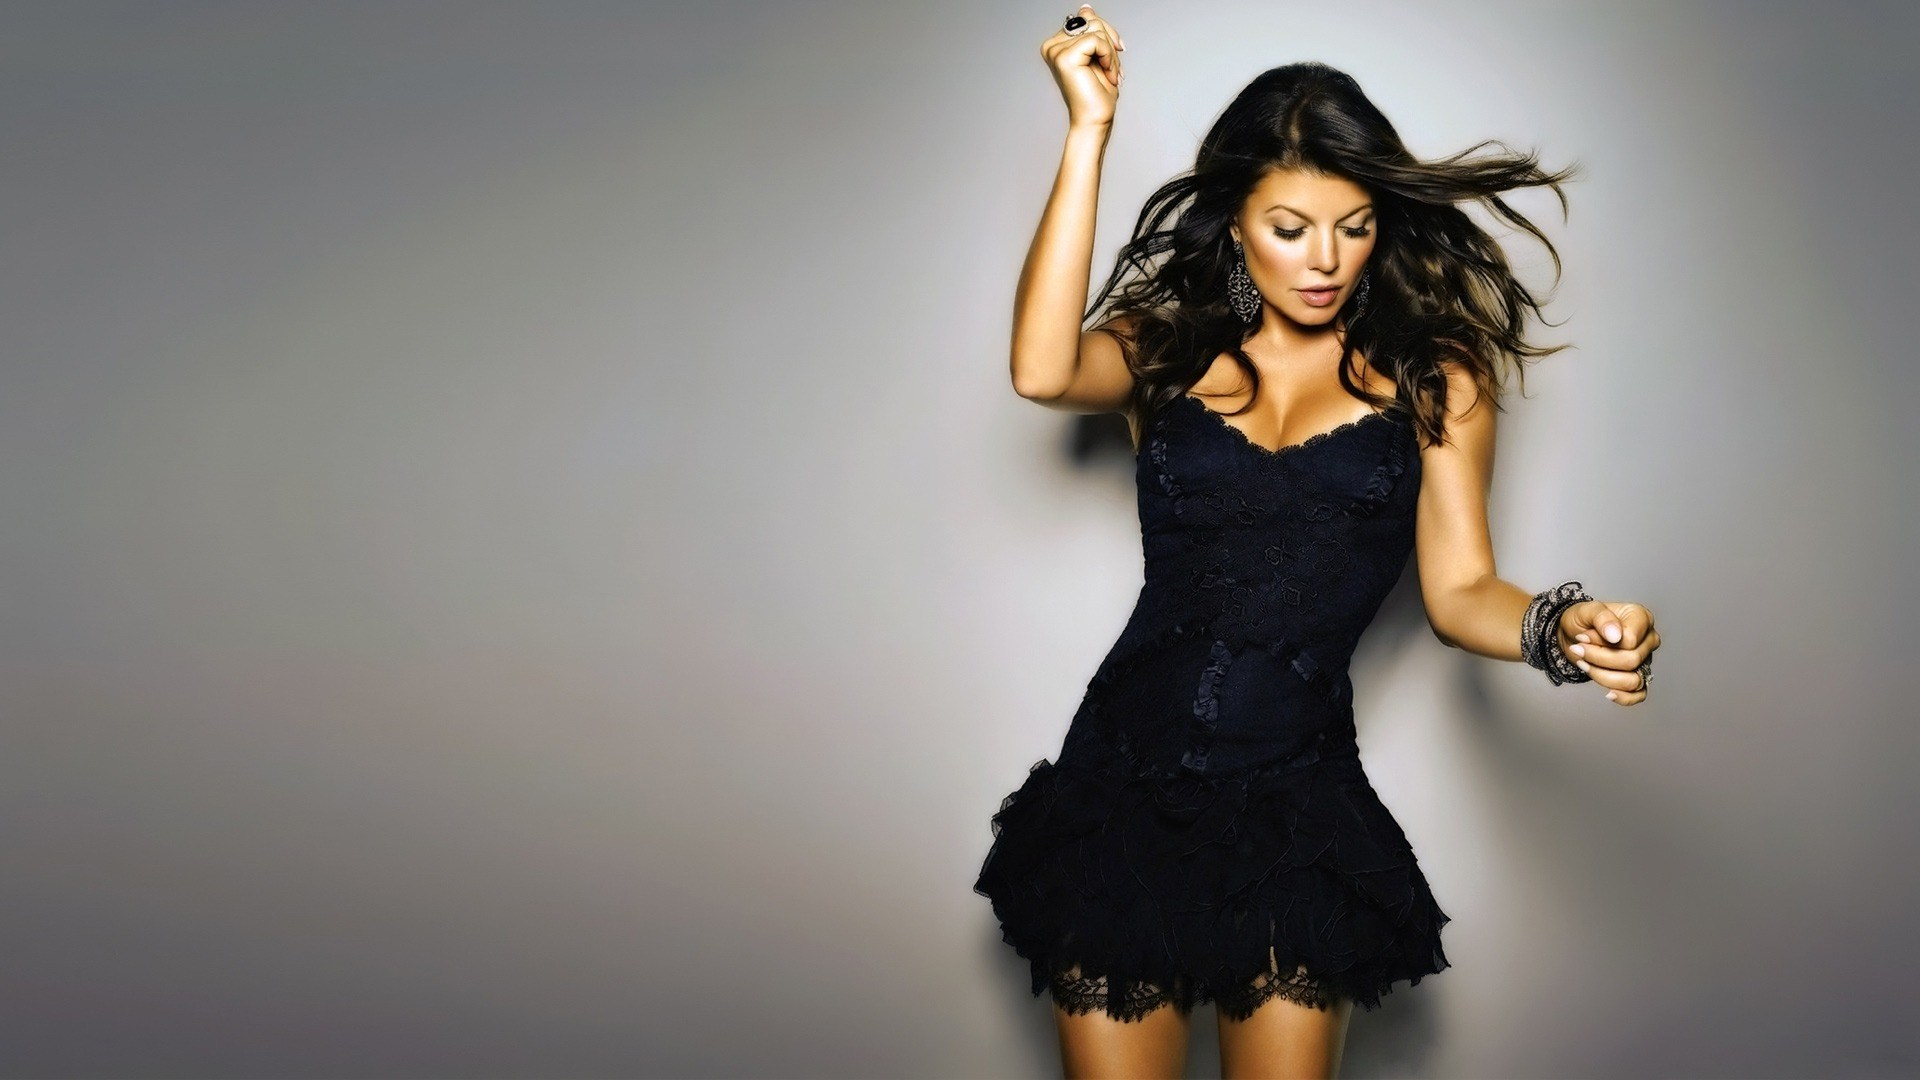 Brunette Girl Awesome Black Dress Fashion HD Wallpaper